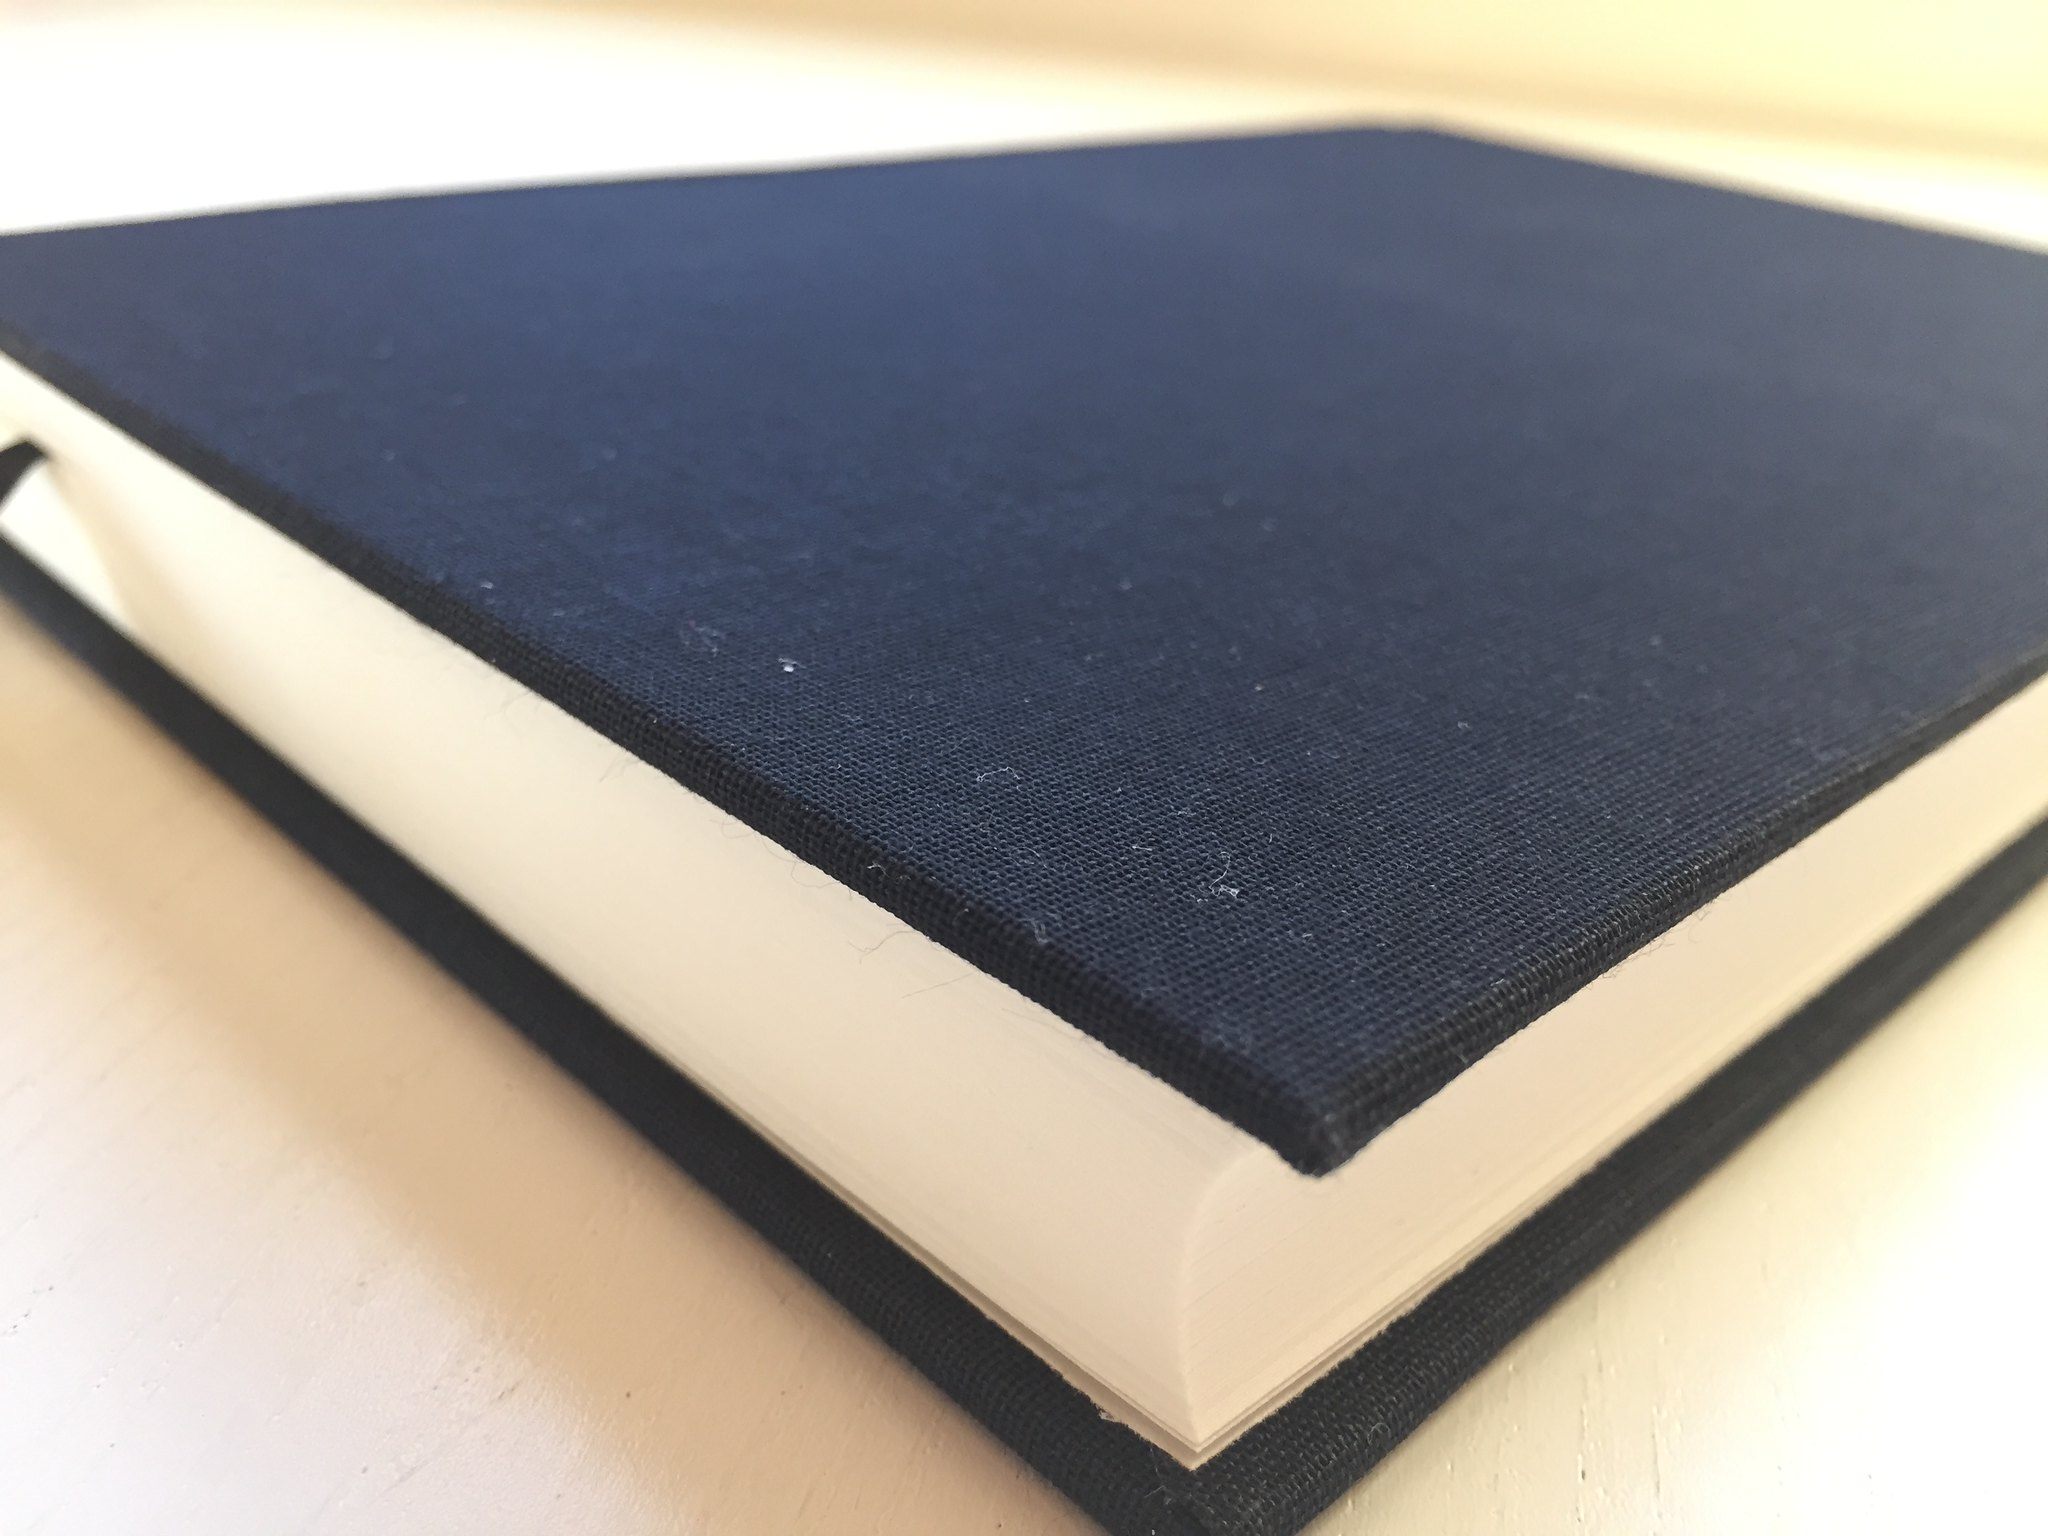 Paperstyle Notebook - Swedish design by Concess.se